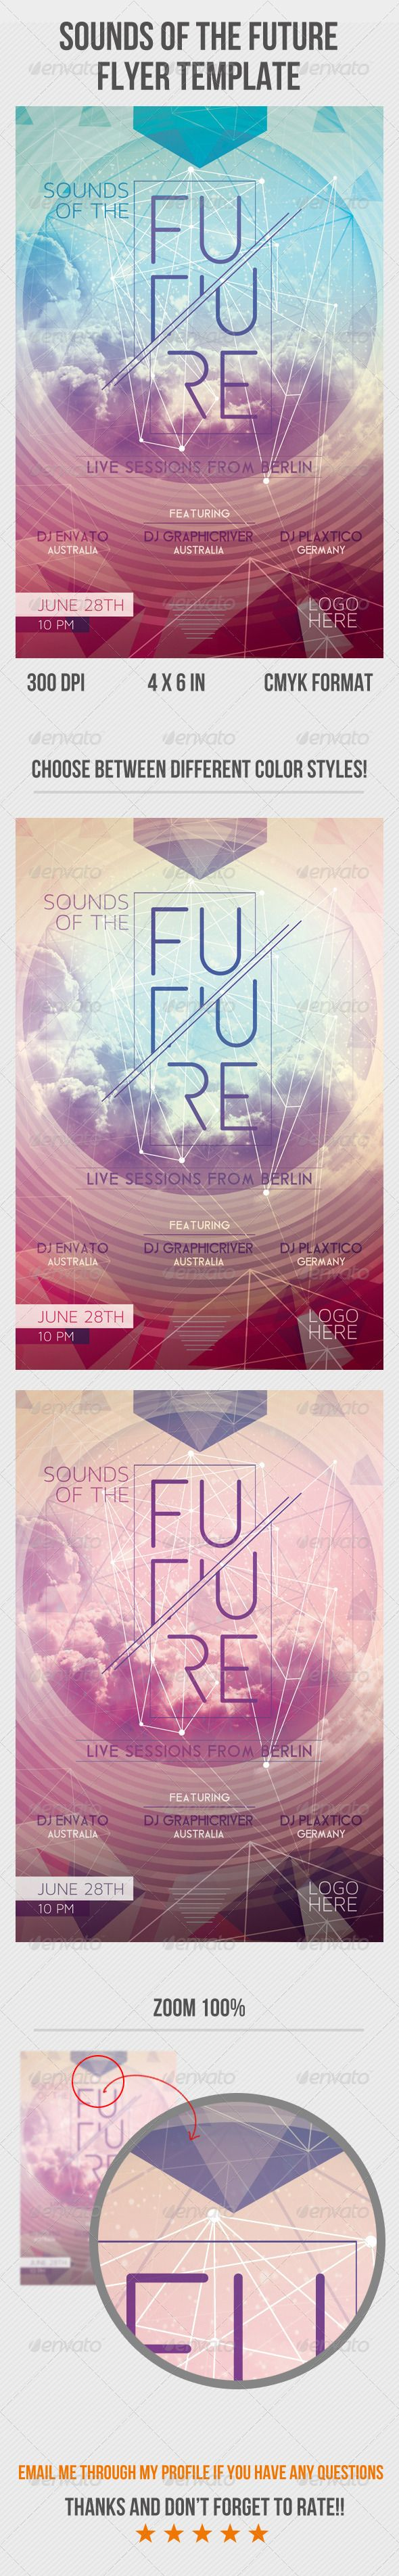 Sounds Of The Future. Print-templates Flyers. Tagged as abstract, alternative, club flyer, club night, concert, dance, disco fever, disco night, dj, drum & bass, dubstep, electro, electronic, futuristic, futuristic flyer, galaxy, gig, house, lightning, low poly, minimal, music, original, party flyer, retro, space, summer, techno, trance, and vintage.